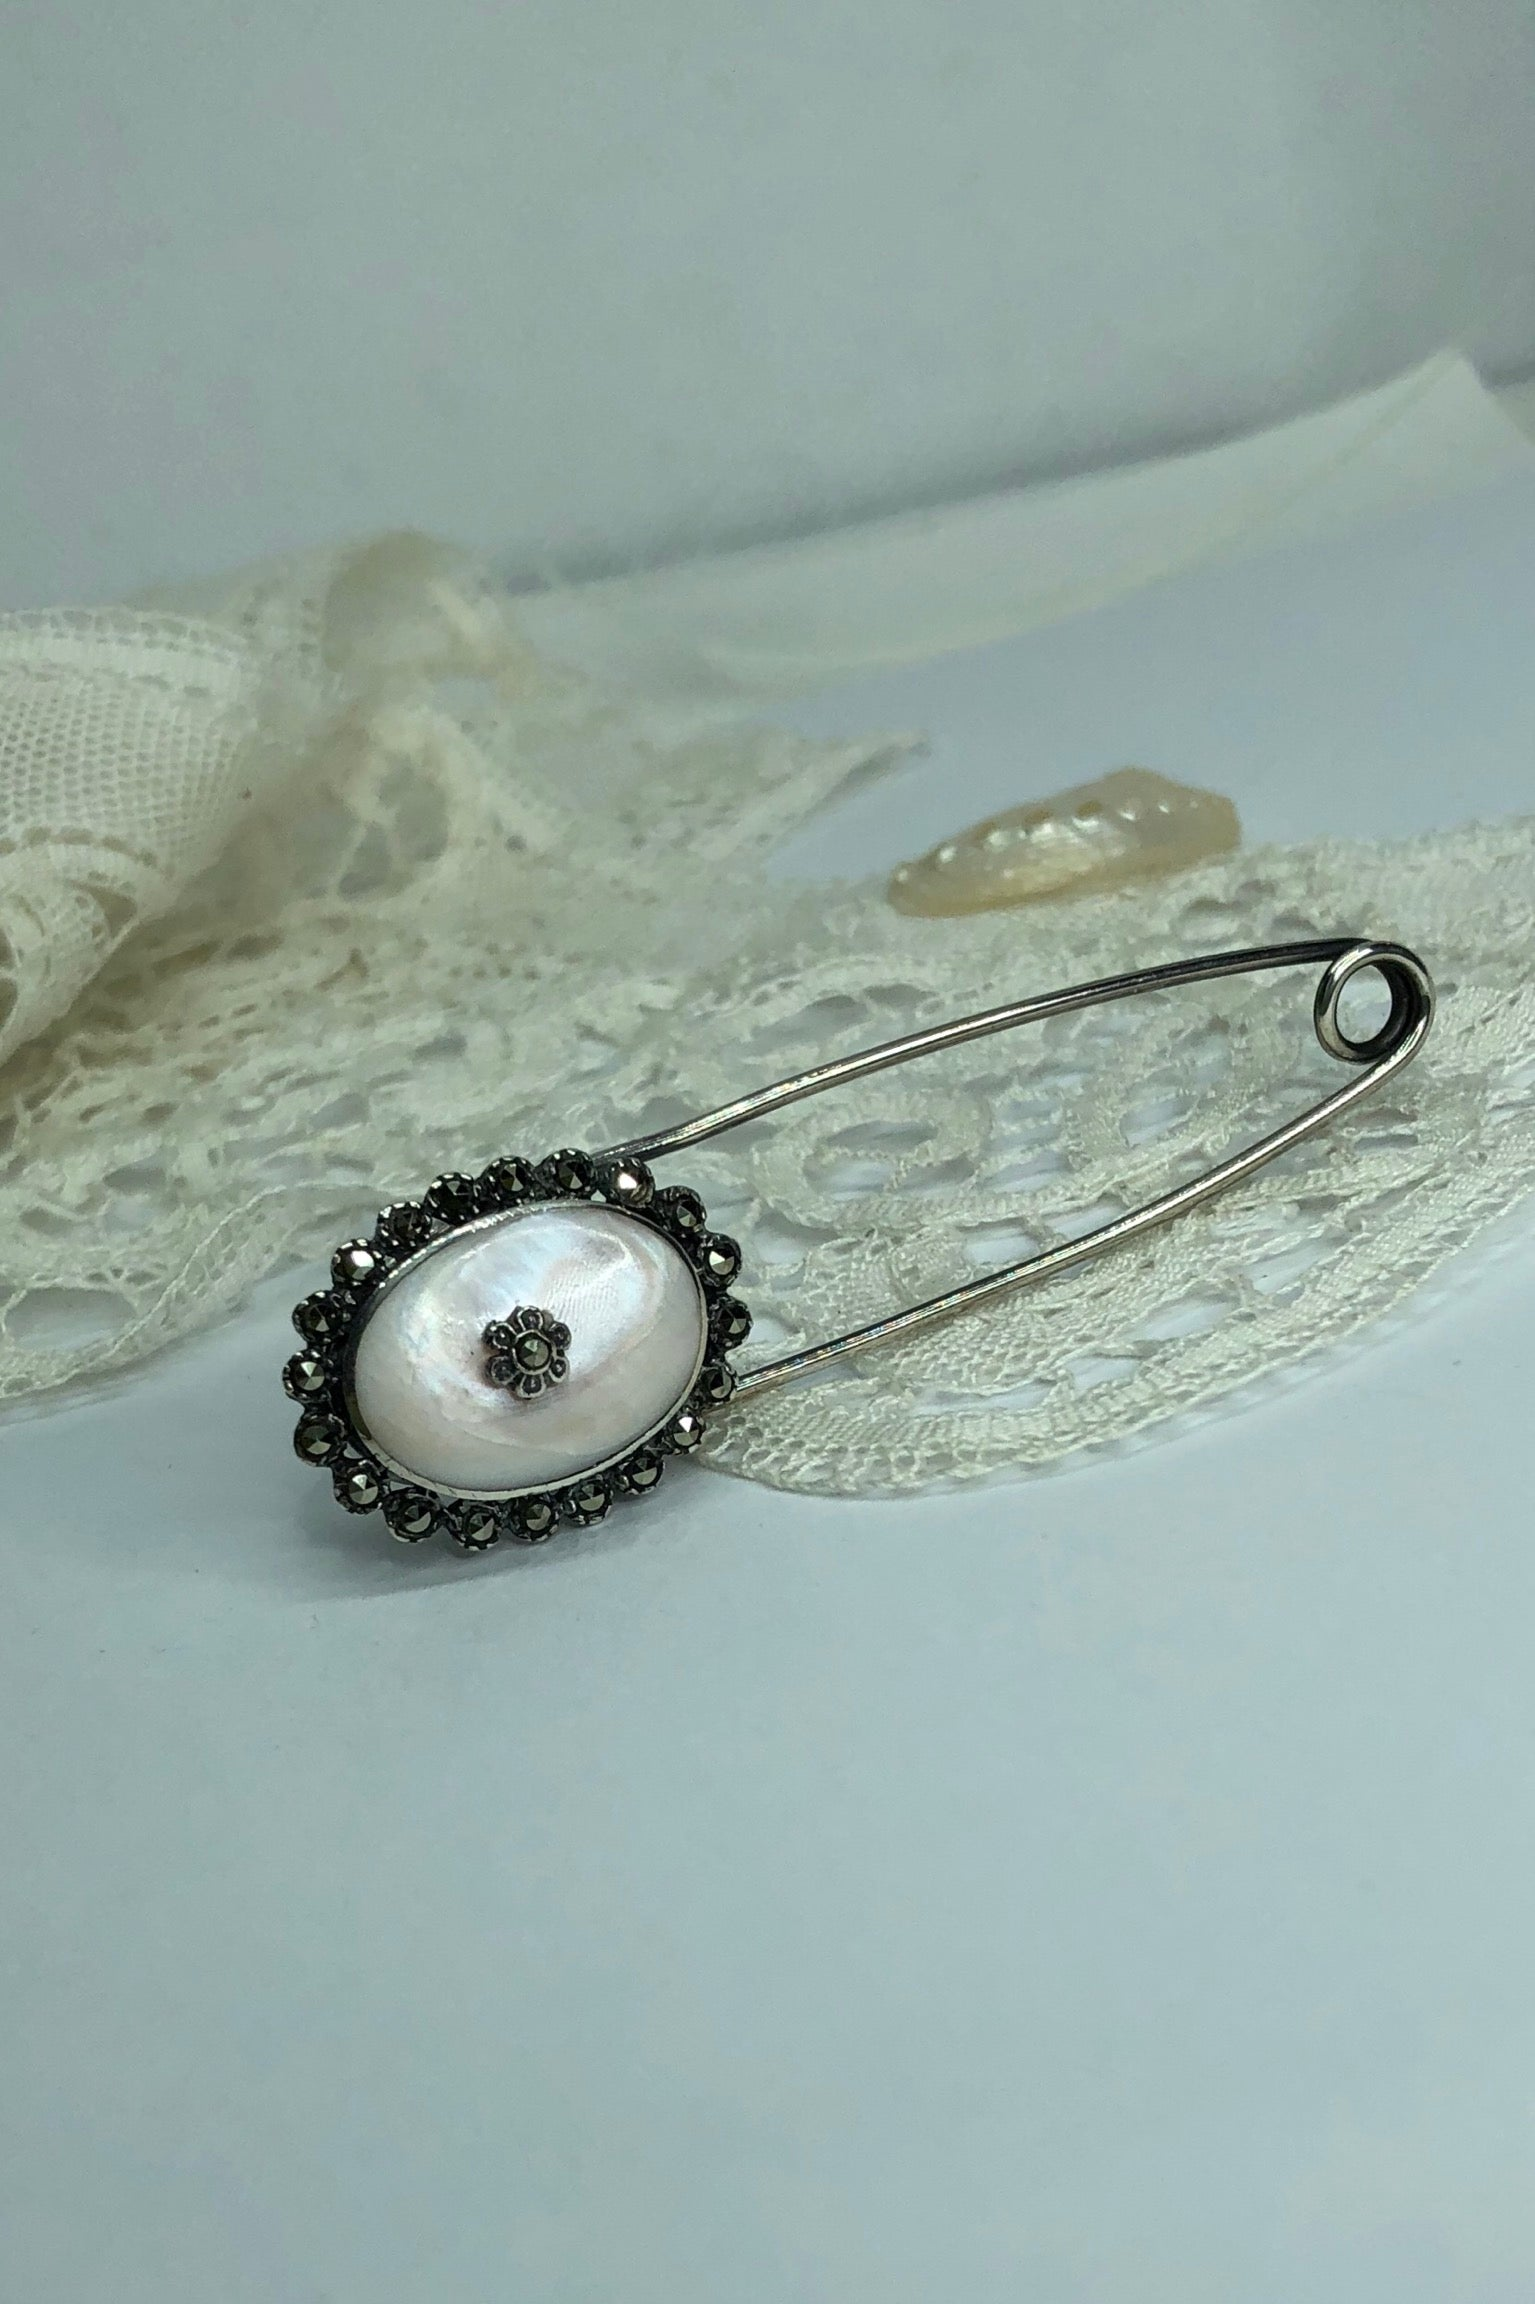 A vintage safety pin brooch with pink Mother of Pearl and Sparkly marcasite. Can be used as a Kilt pin.